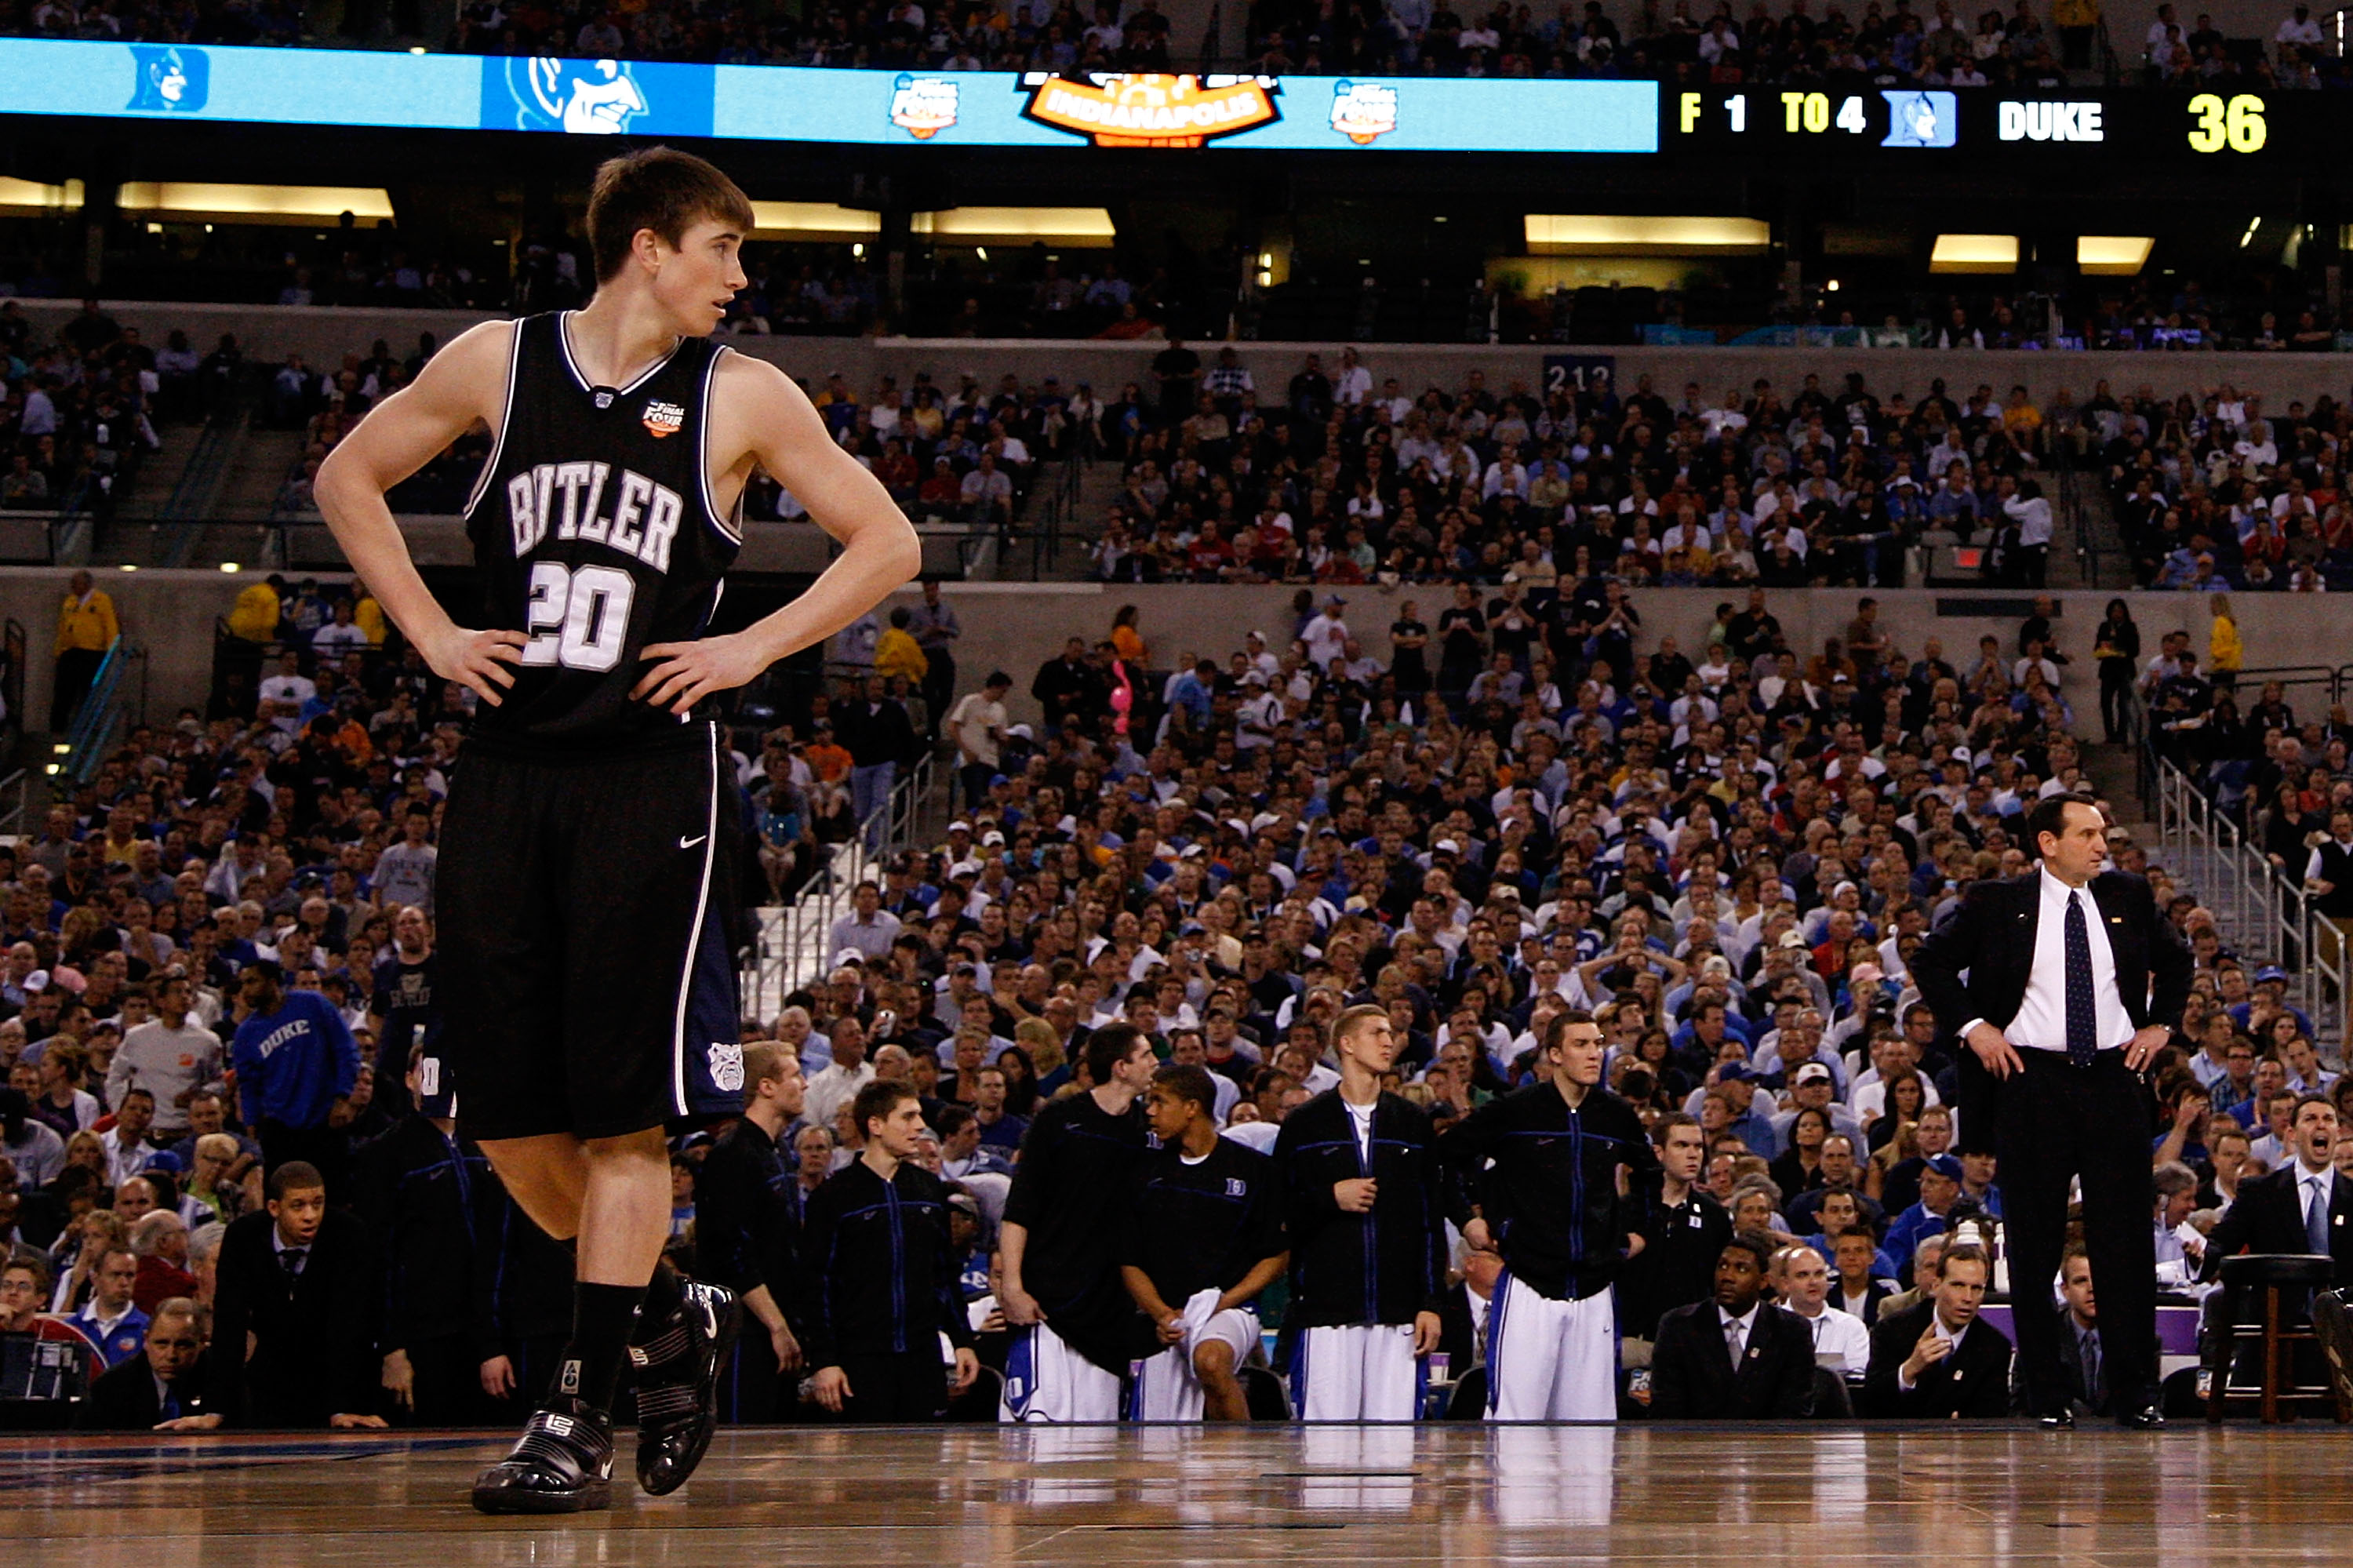 INDIANAPOLIS - APRIL 05:  Gordon Hayward #20 of the Butler Bulldogs looks on against the Duke Blue Devils during the 2010 NCAA Division I Men's Basketball National Championship game at Lucas Oil Stadium on April 5, 2010 in Indianapolis, Indiana.  (Photo b